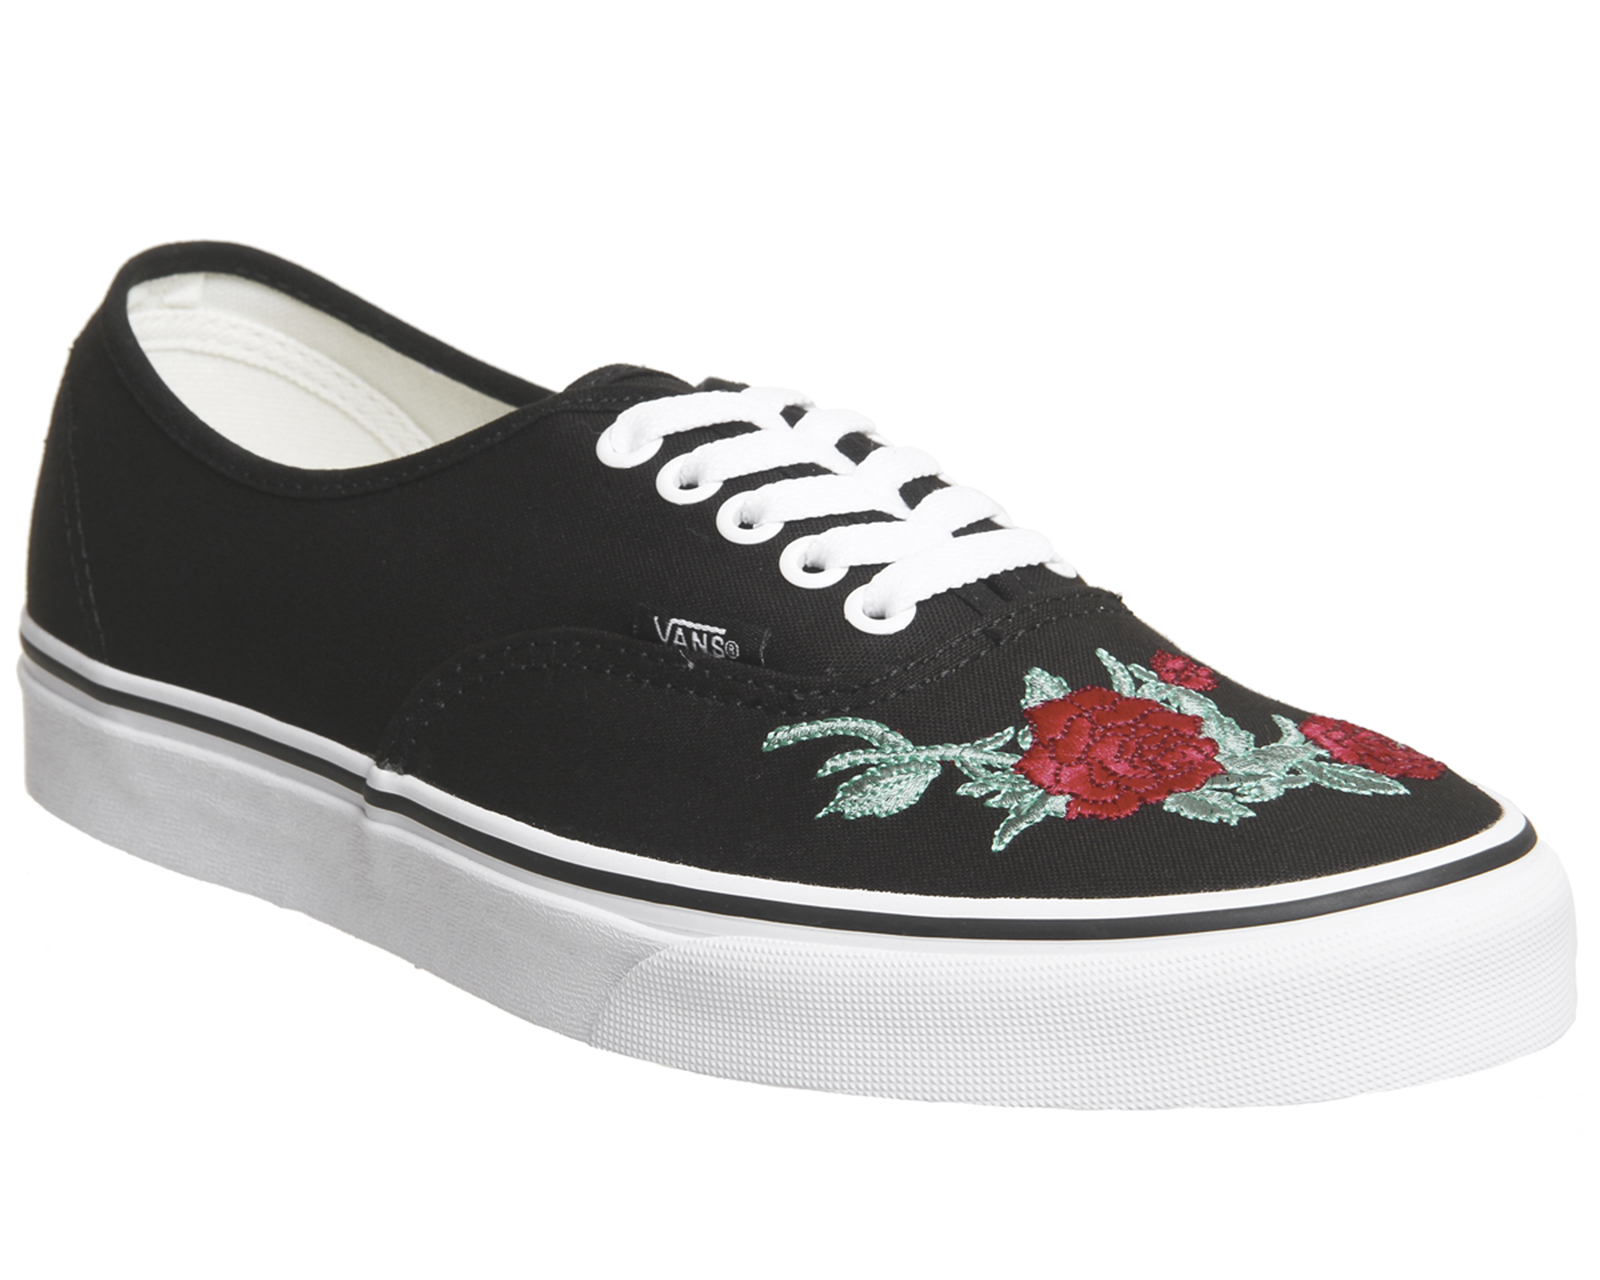 f49712a50af8 Sentinel Womens Vans Authentic Trainers Black Red Rose Trainers Shoes